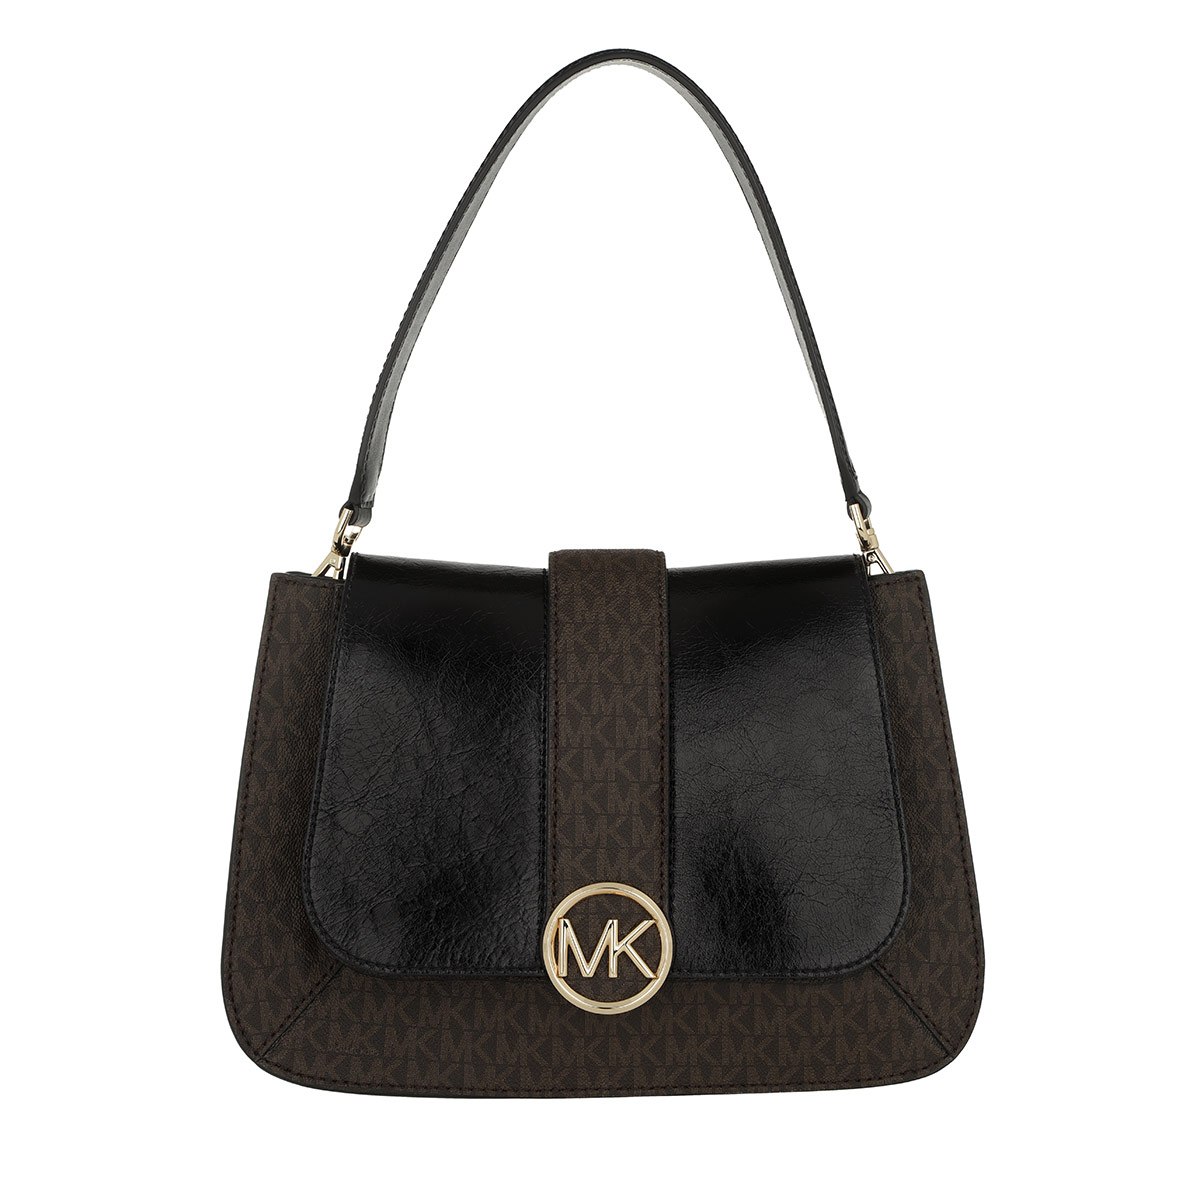 Michael Kors Satchel Bag - Lillie MD TH Flap Bag Black/Brown - in braun - für Damen